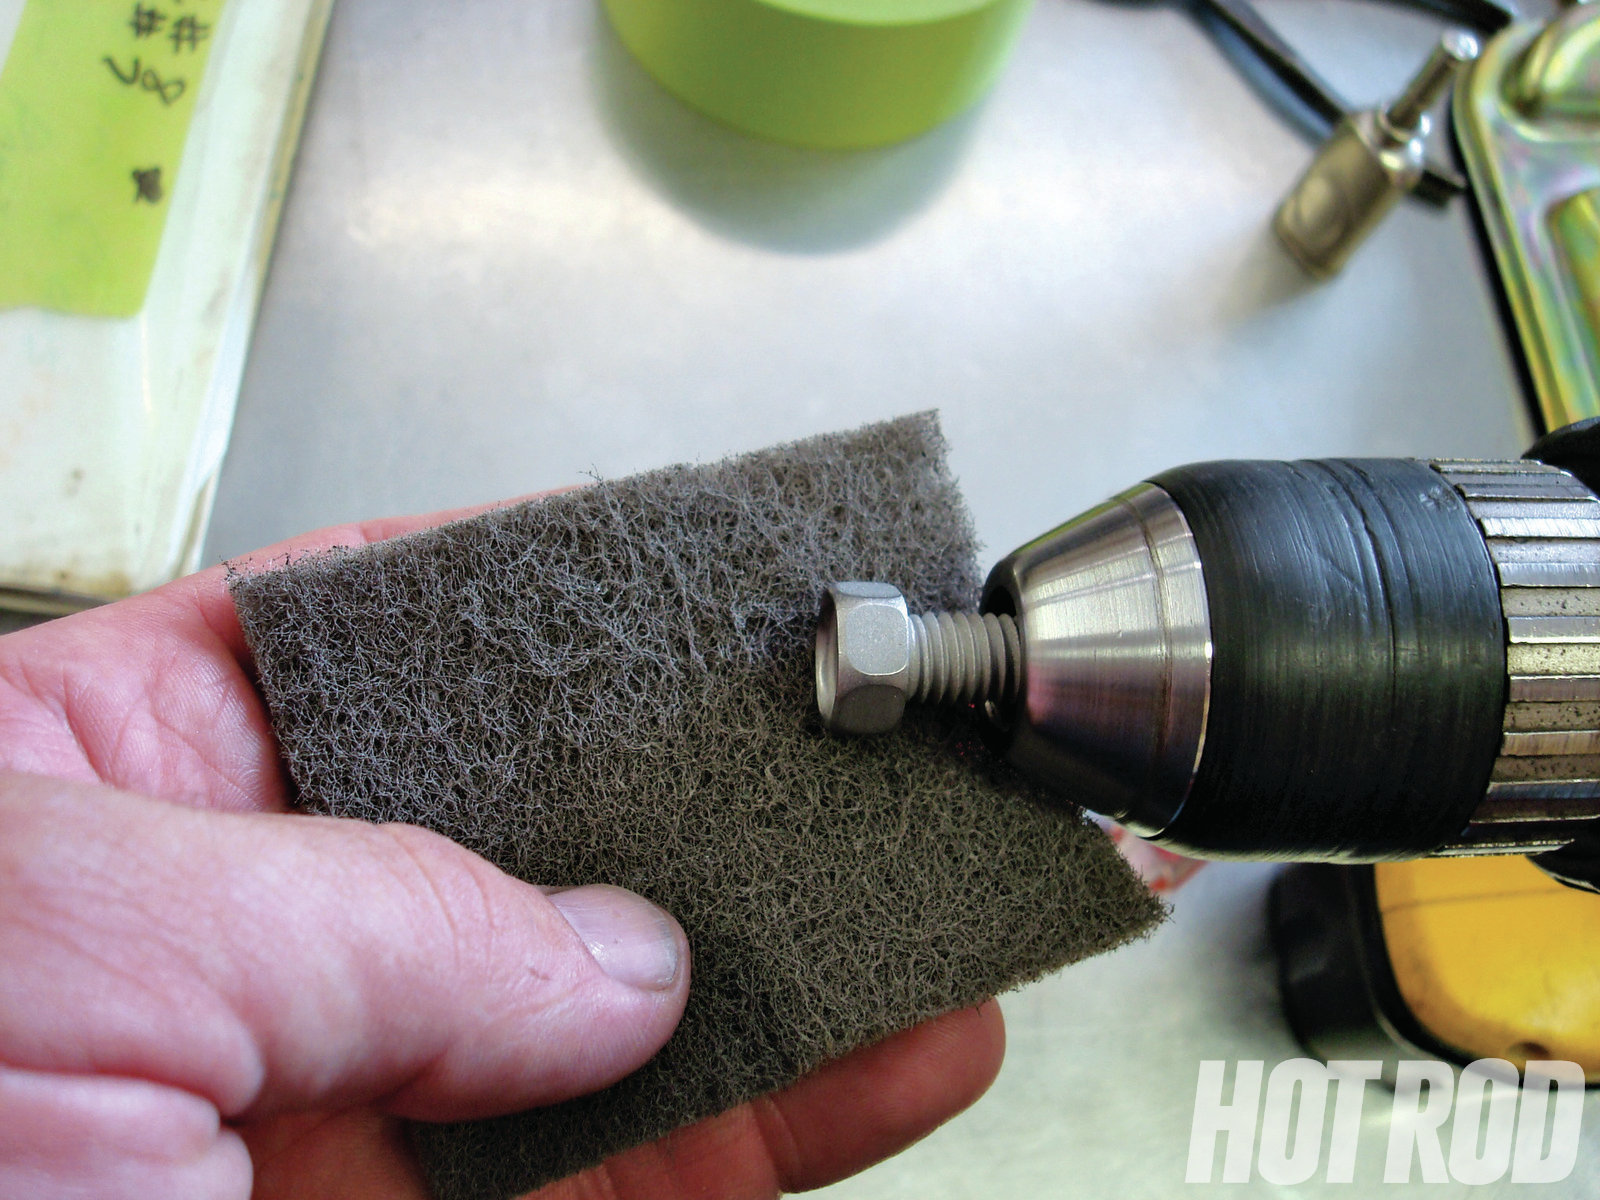 Drill Finish Give stainless or plated bolts a nice satin finish by chucking them in a drill and running them over a fine (gray) scuff pad.